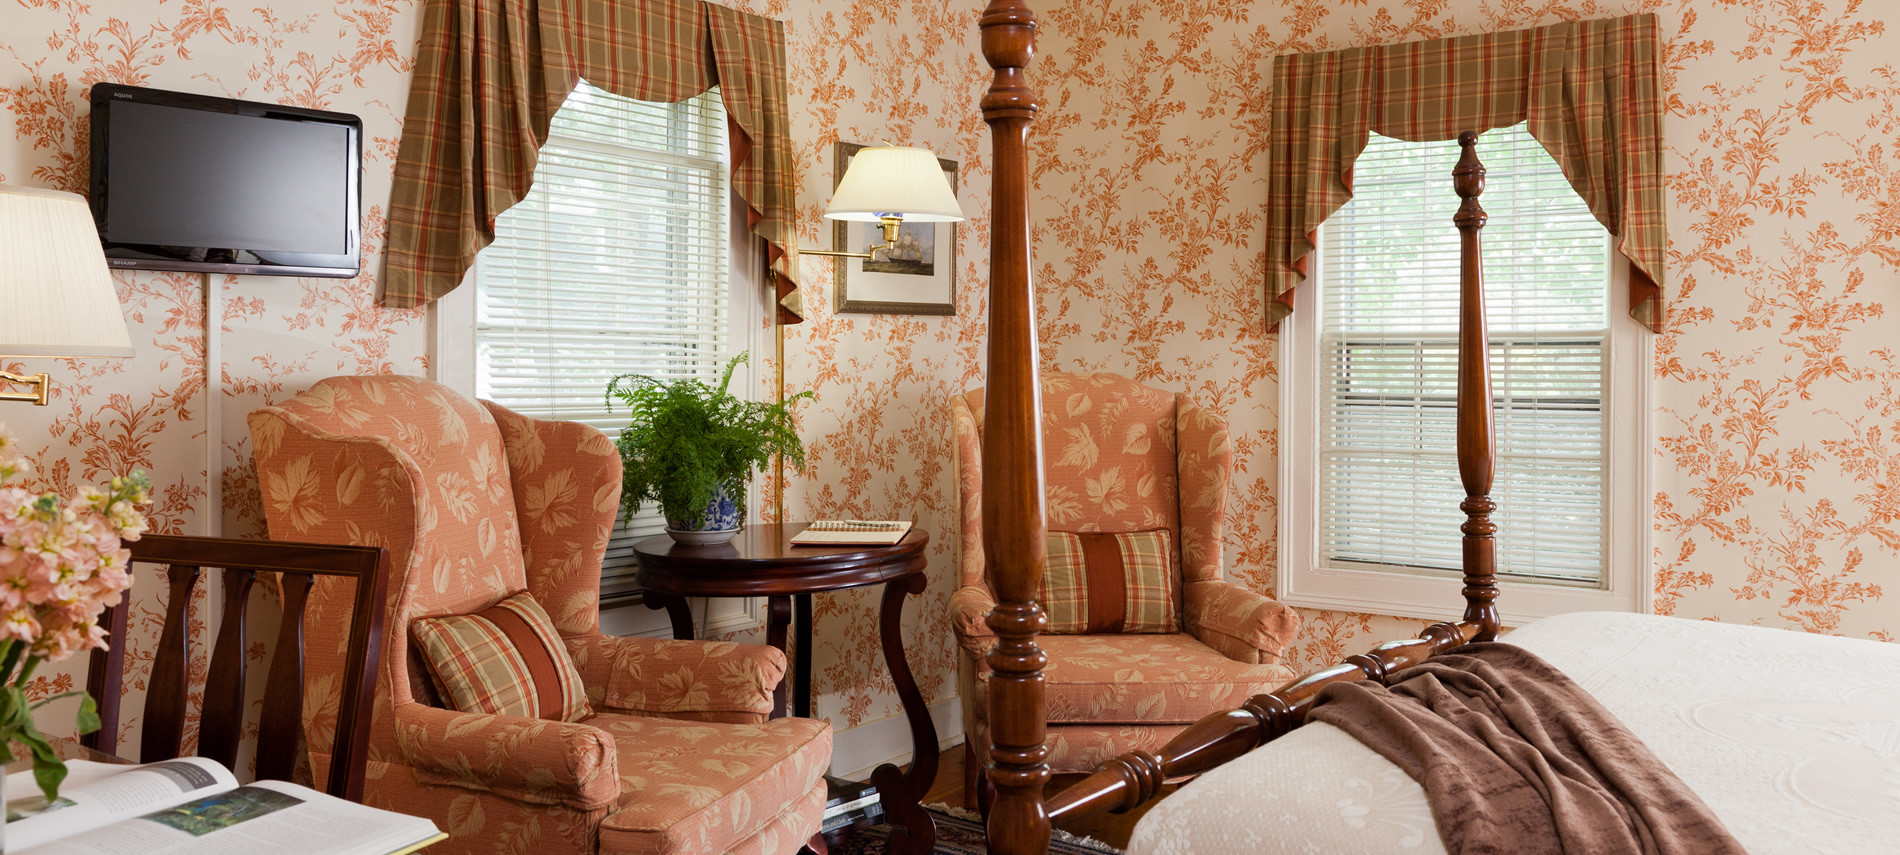 Typhoon Room with two peach high back chairs and peach flowered wall paper.